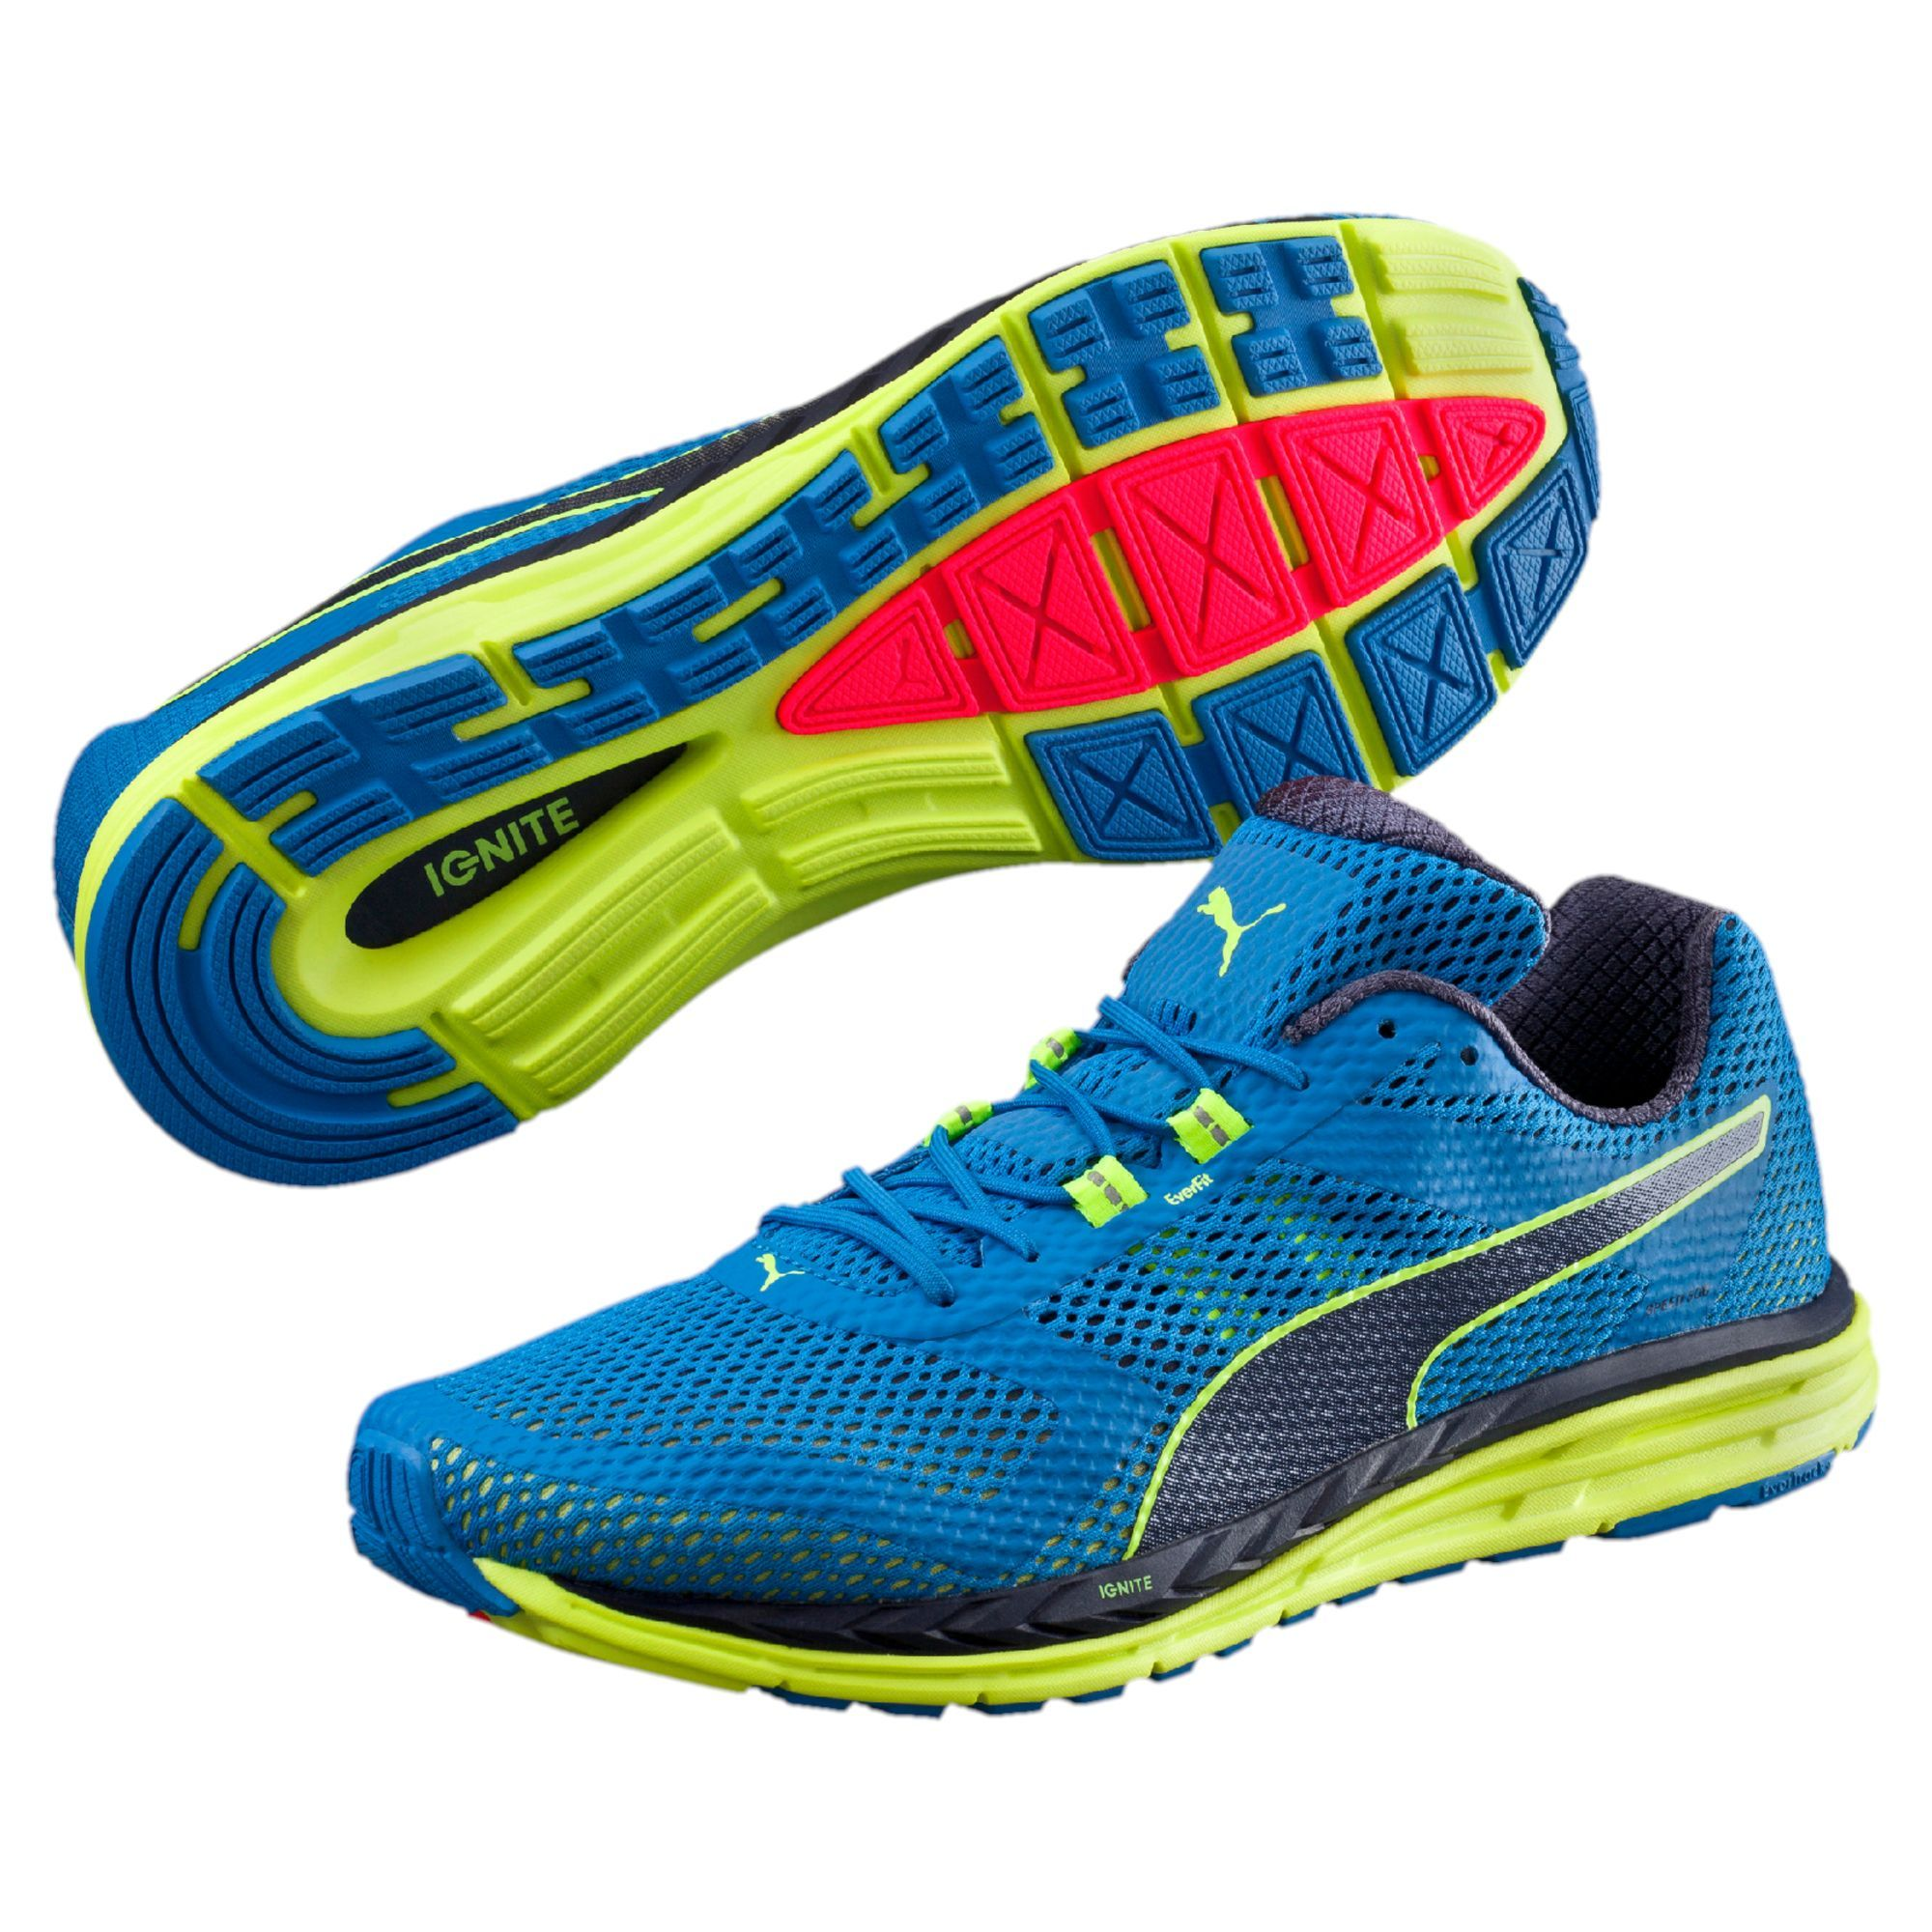 Mens Lightweight Gym Shoes